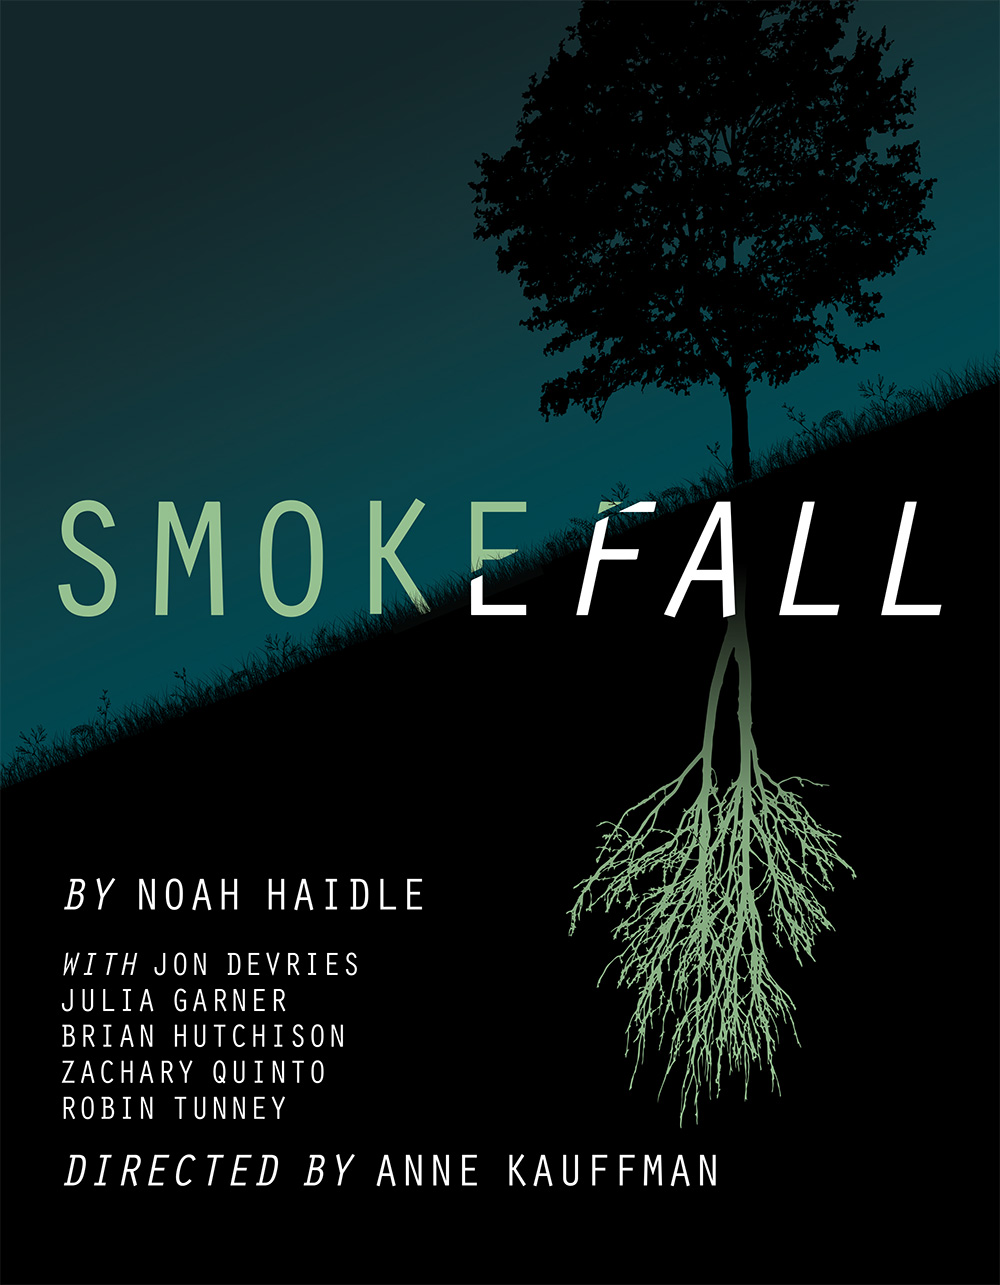 Artwork for  Smokefall  at MCC Theater, designed by Ted Stephens III, The Numad Group.